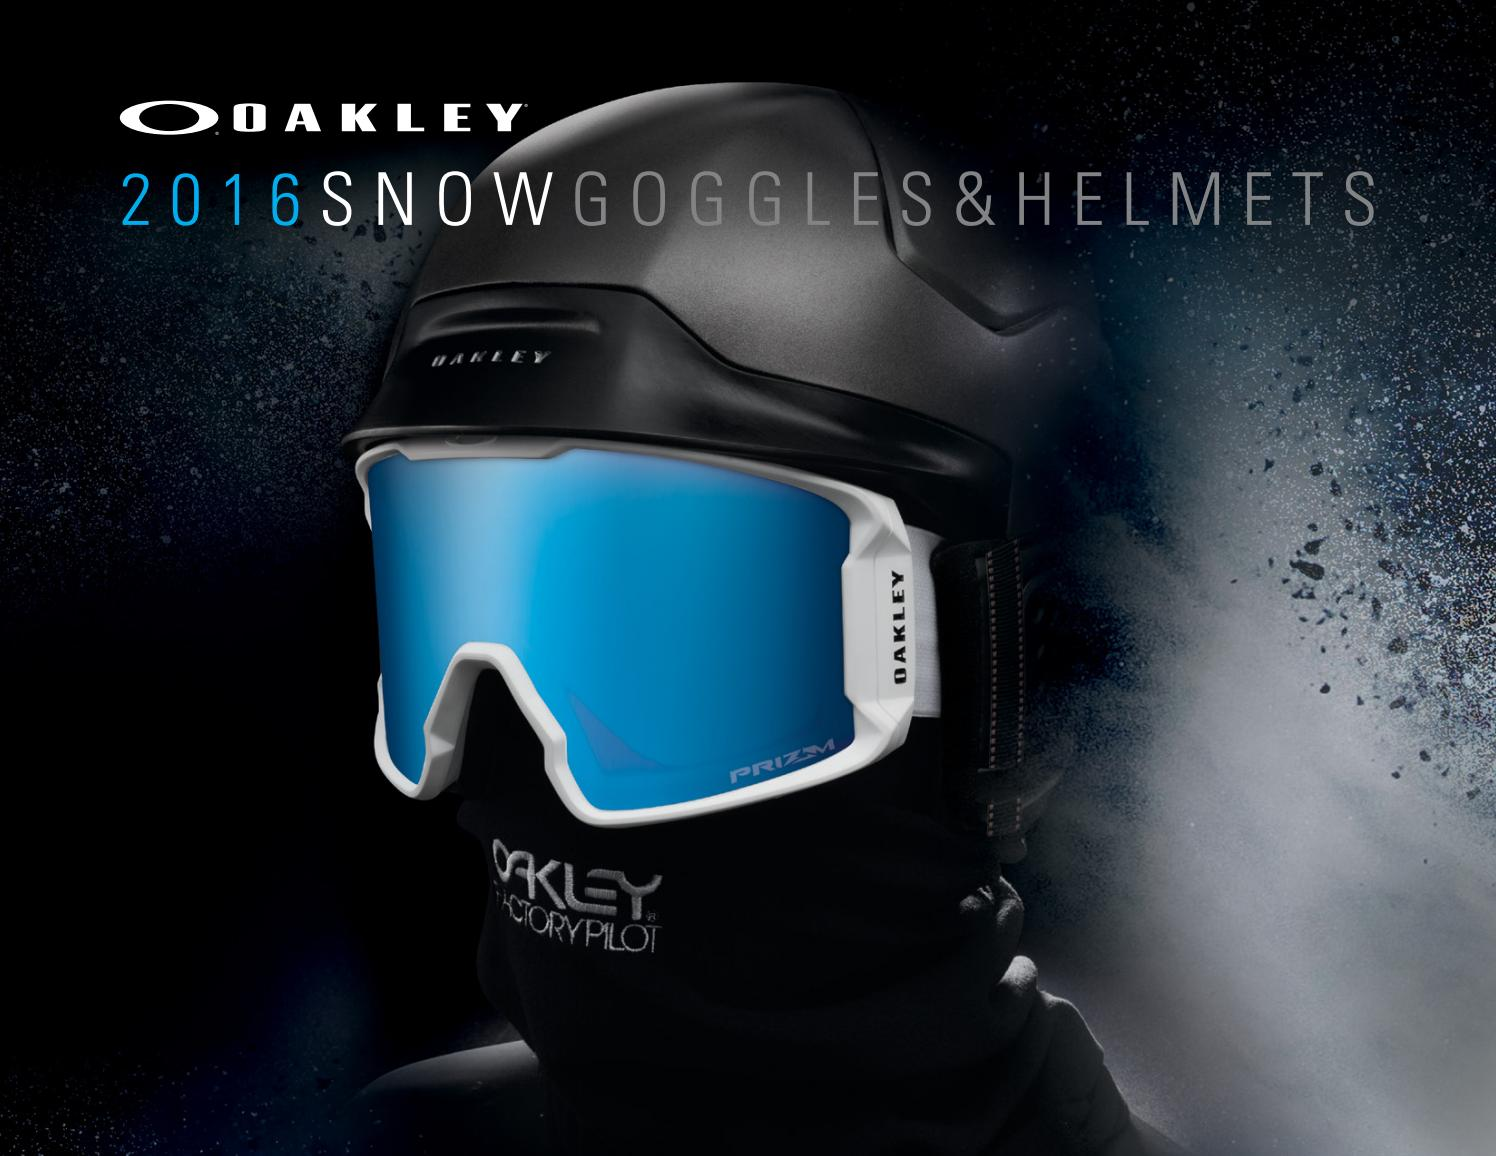 83614446a13 2016 Snow Goggle Product Book by Oakley - issuu